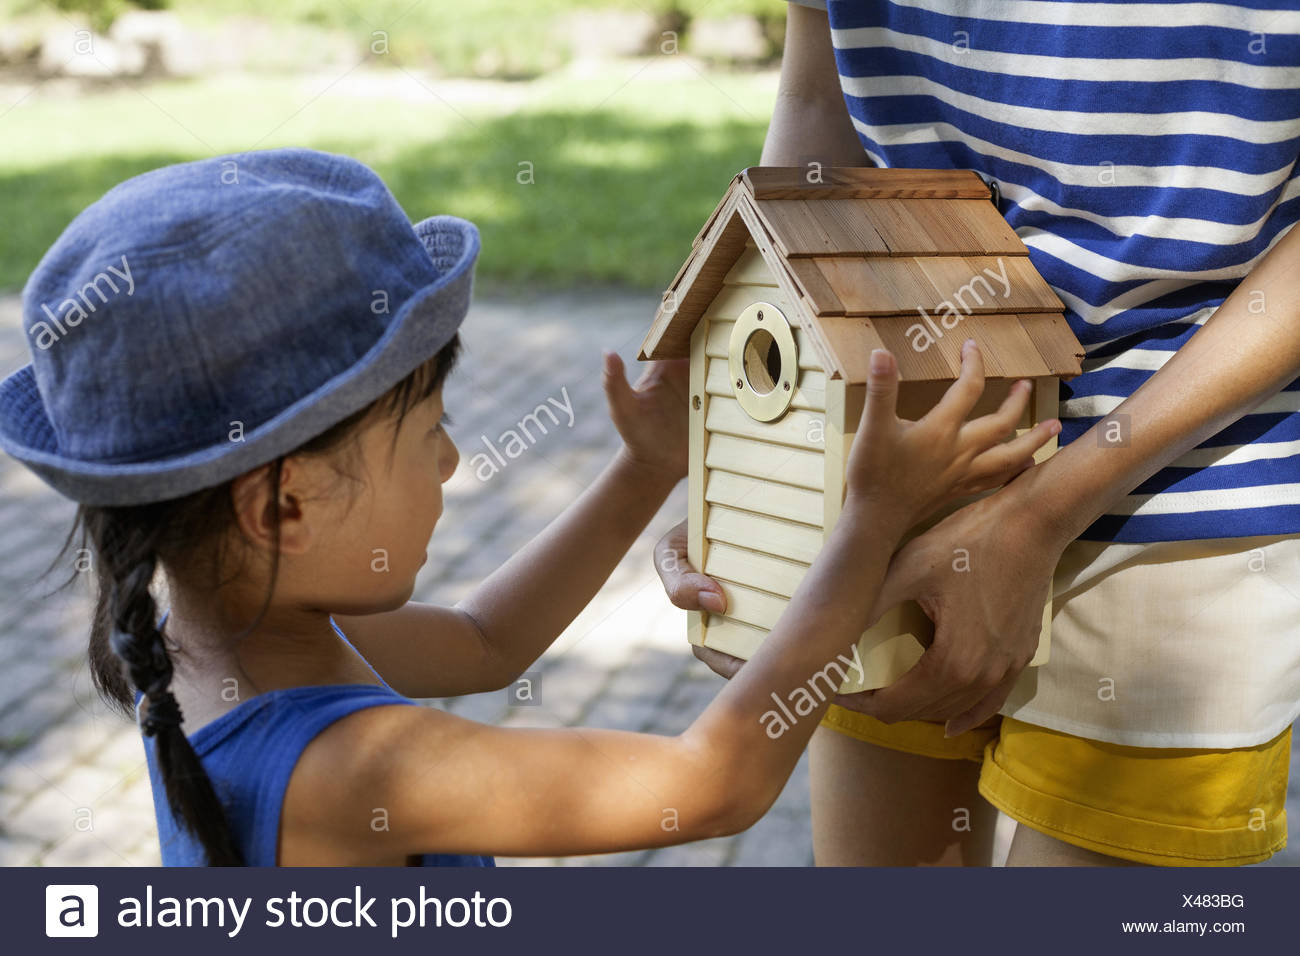 Young girl wearing a summer dress and sun hat, holding a bird house. Stock Photo